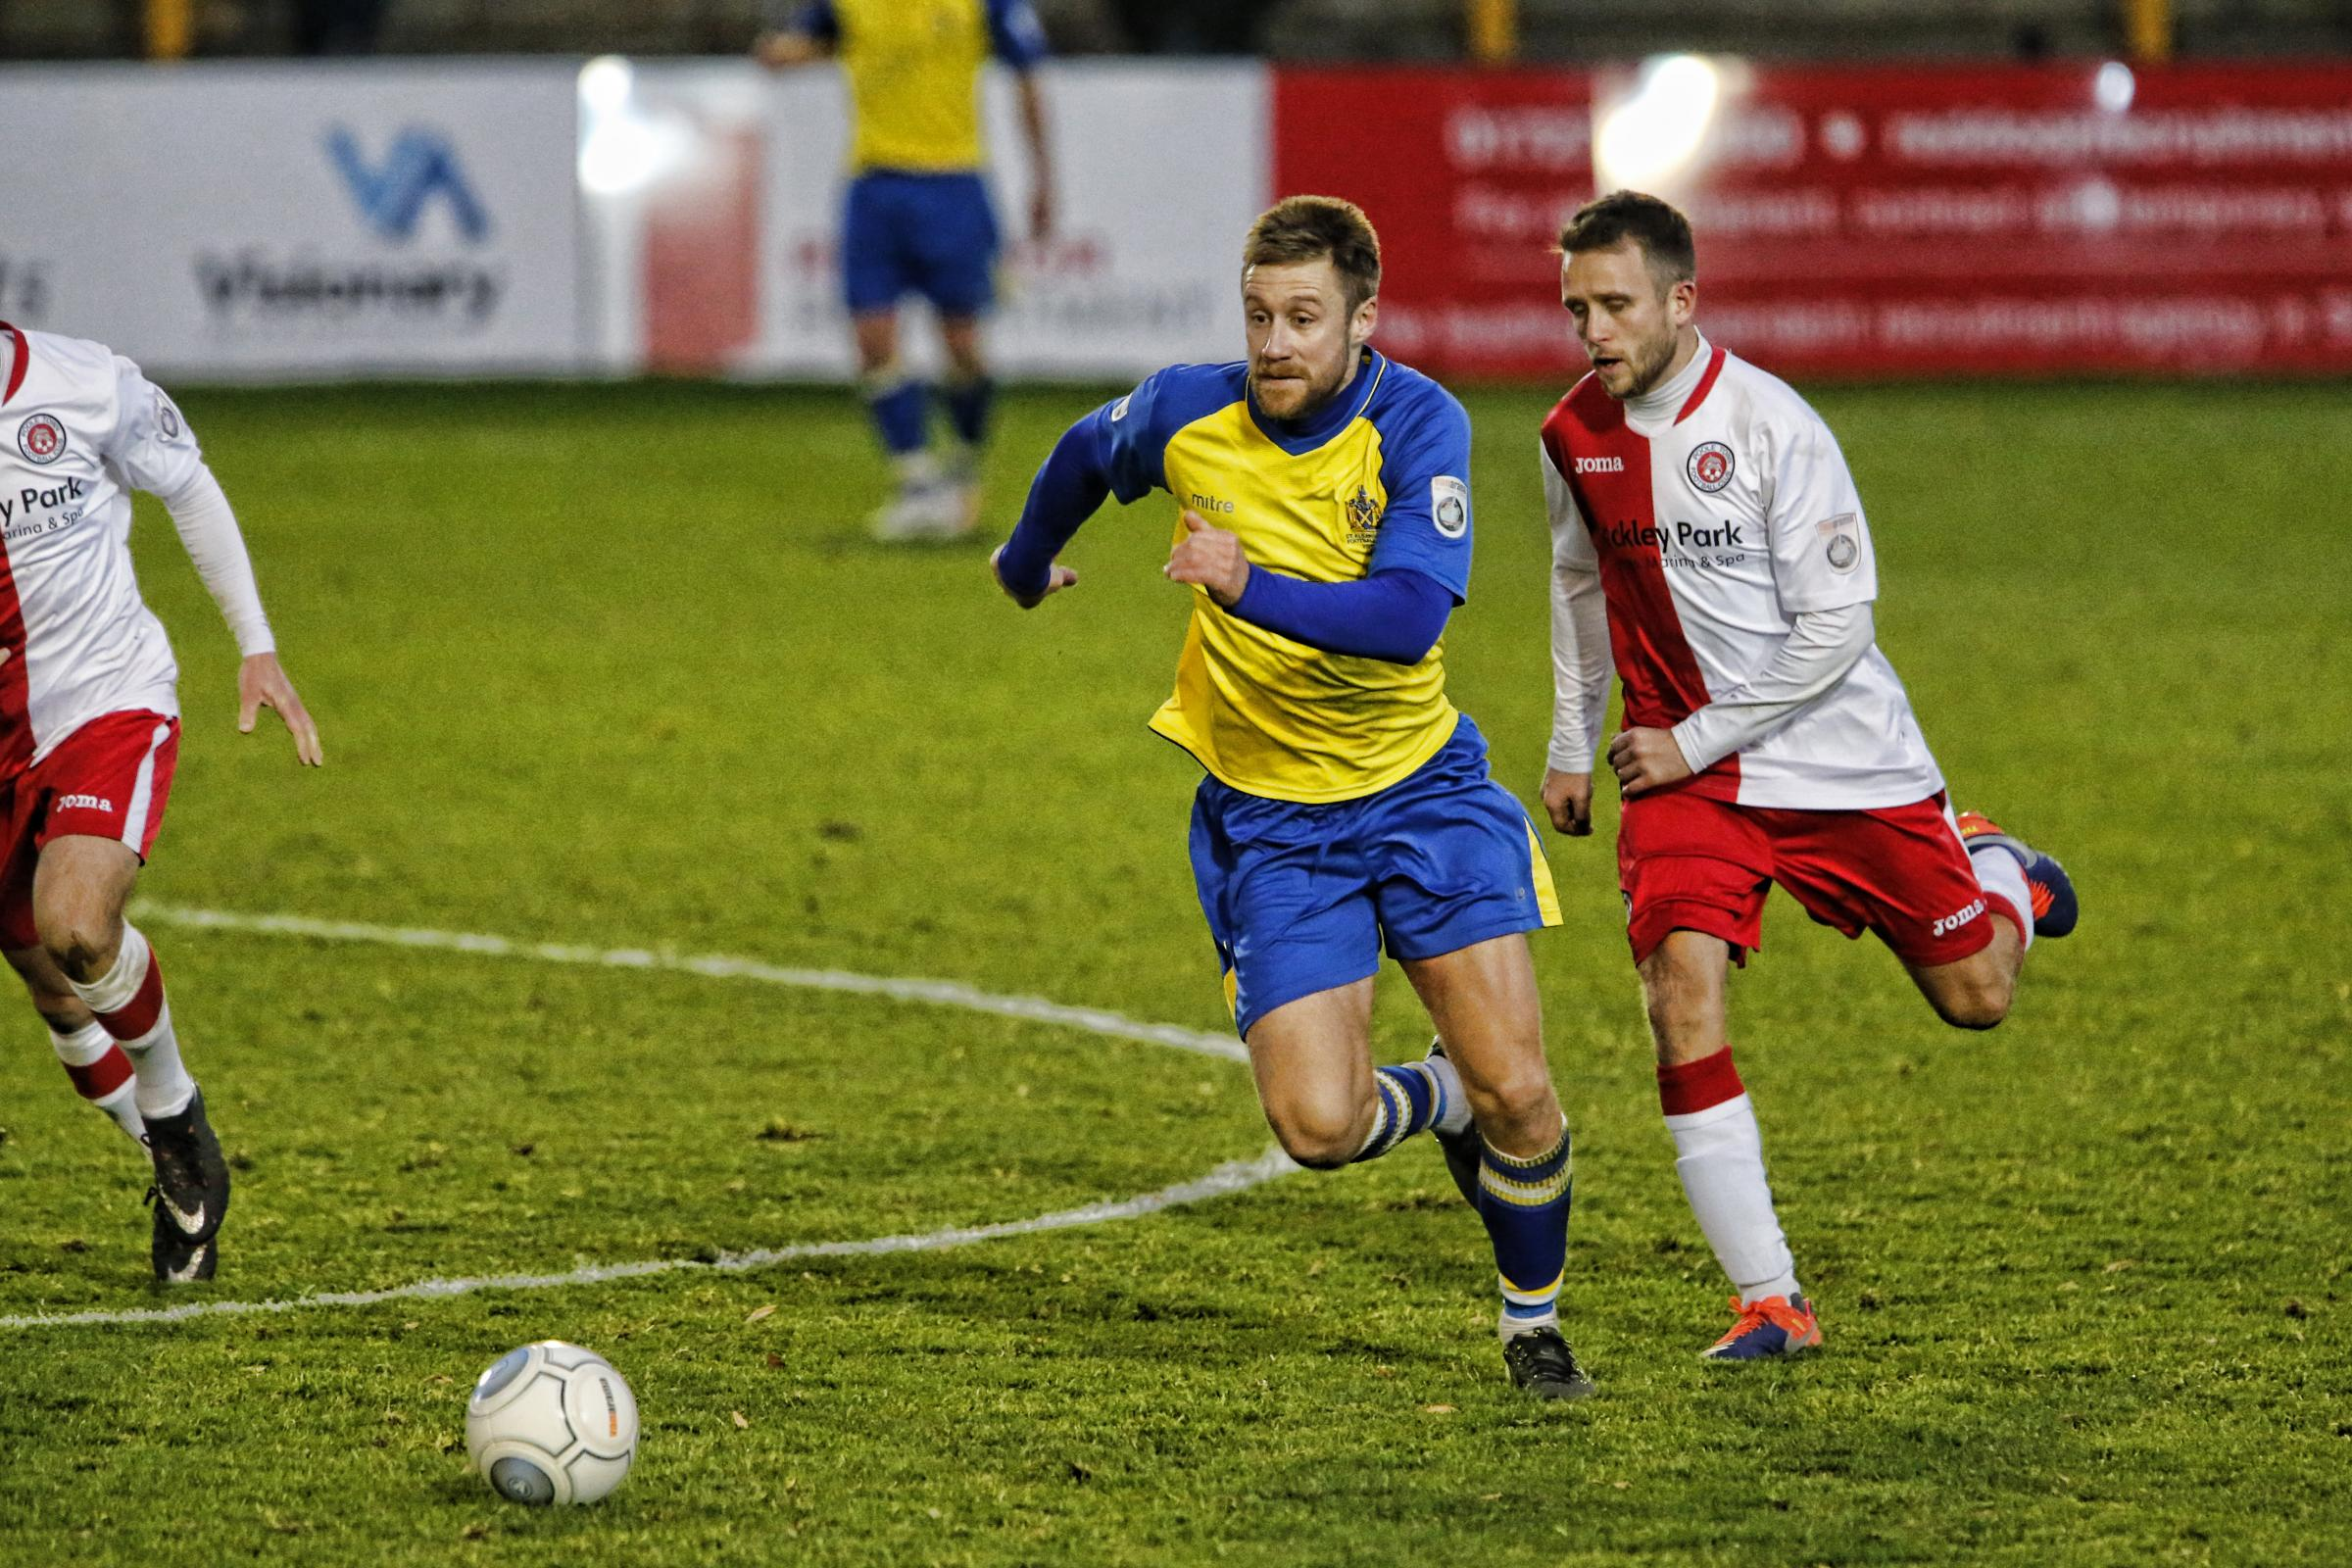 St Albans City overcame Poole 3-1 on Saturday. Picture: Action Images